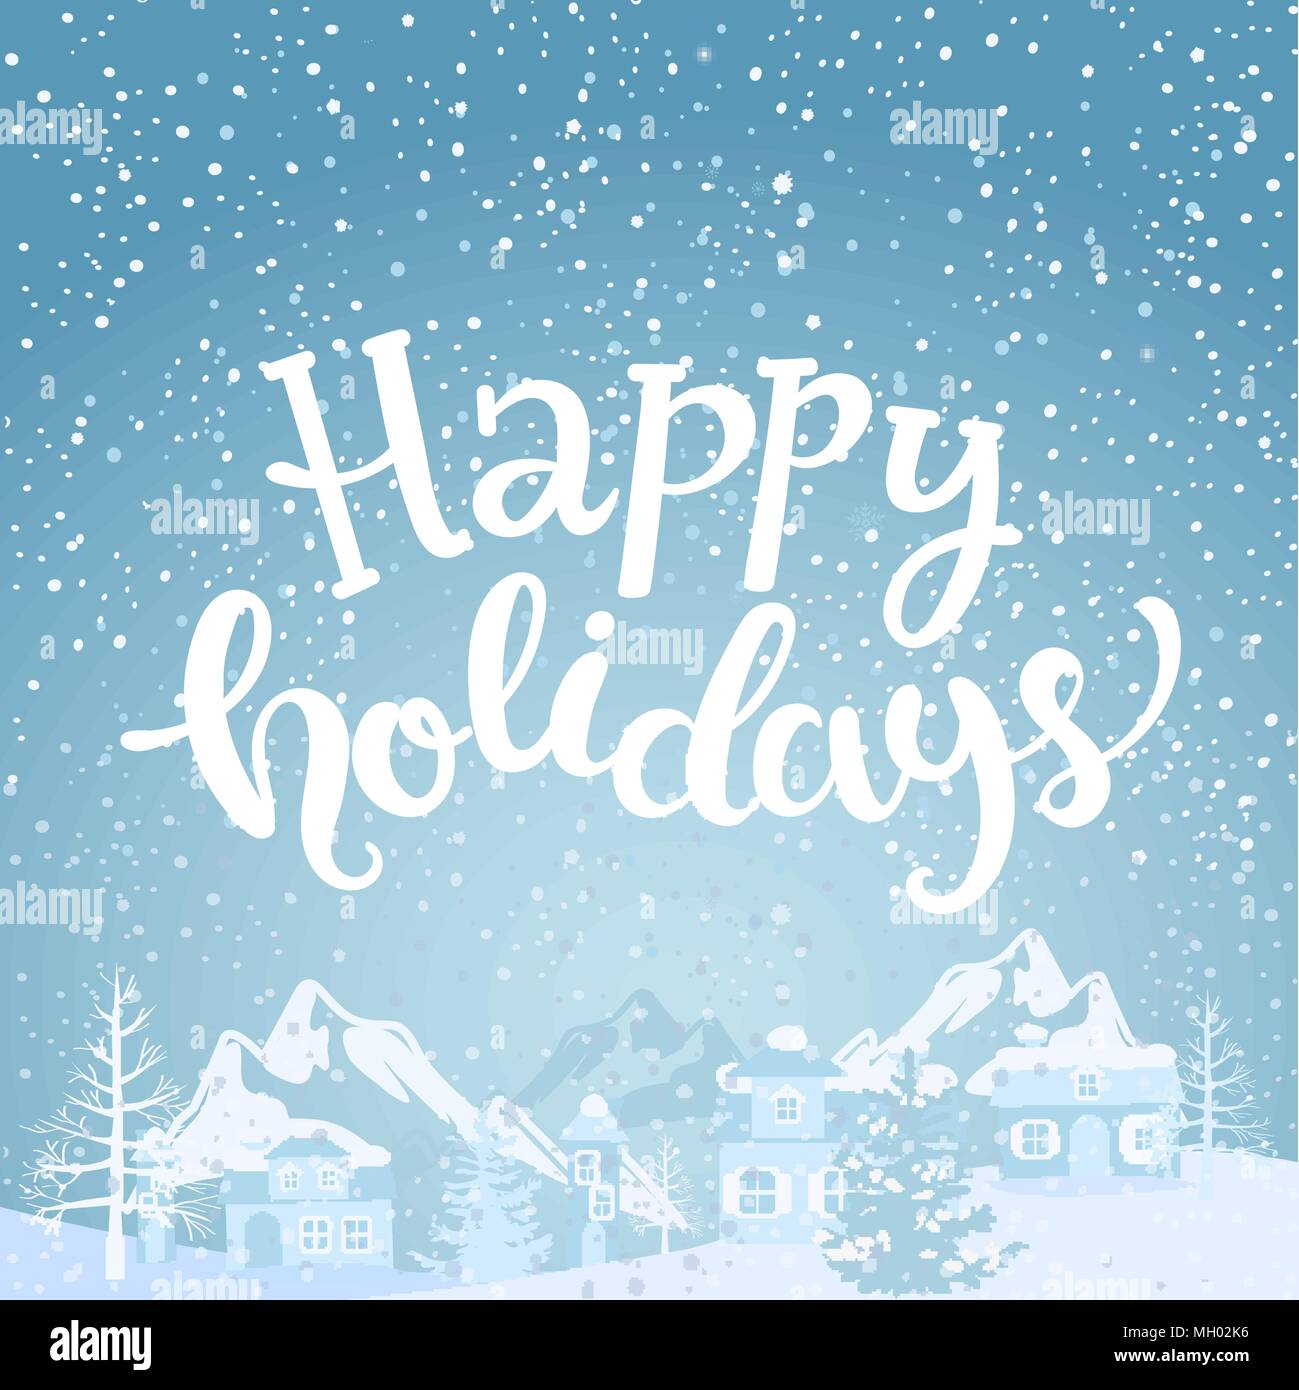 Hello holidays greeting card with lettering snowfall on the hello holidays greeting card with lettering snowfall on the background of village and mountains vector illustration m4hsunfo